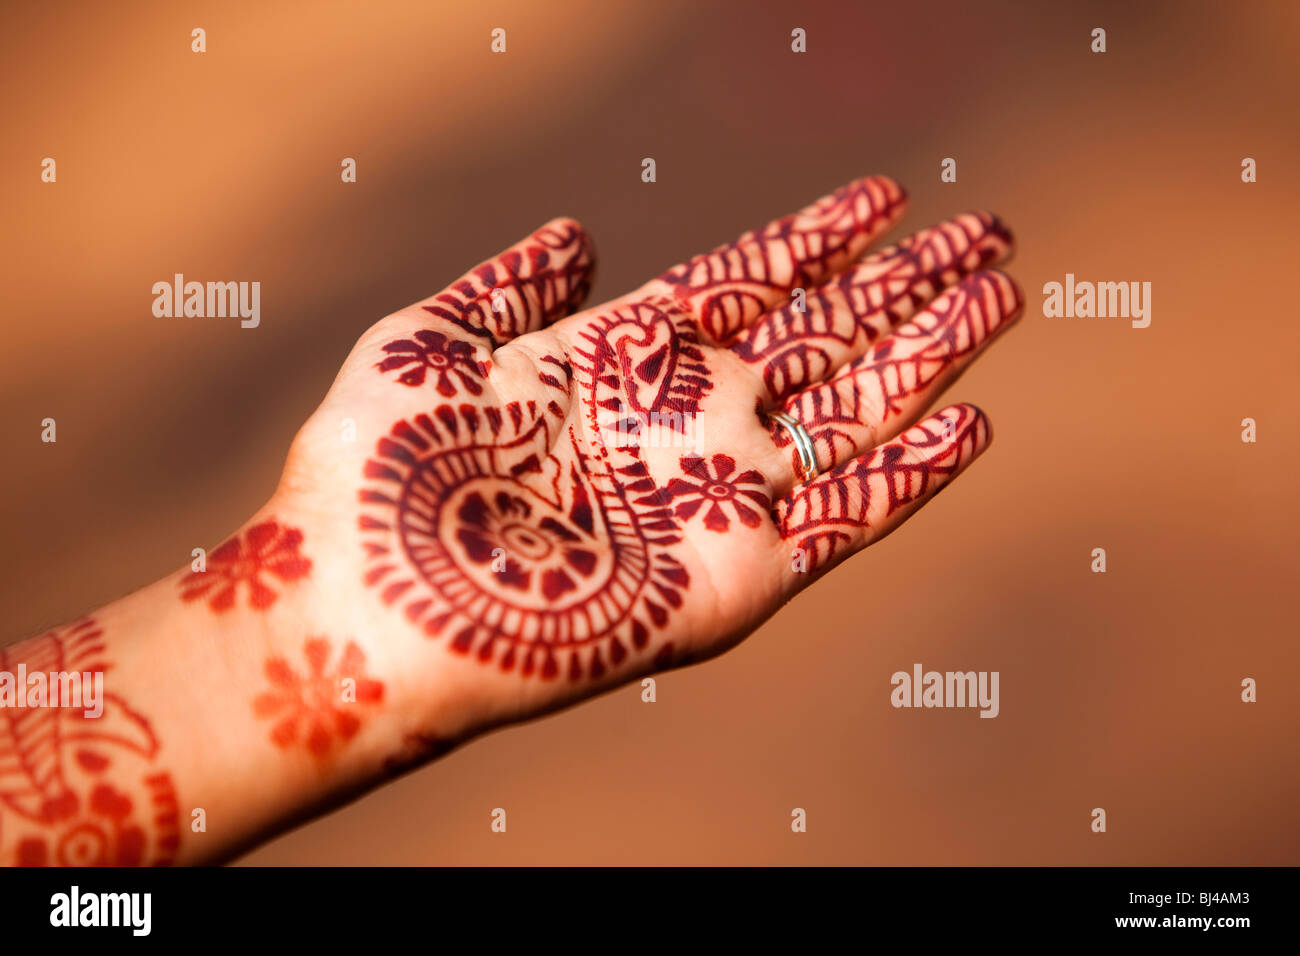 100 henna hands stock images royalty mehndi hand stock images royalty free images u0026. Black Bedroom Furniture Sets. Home Design Ideas